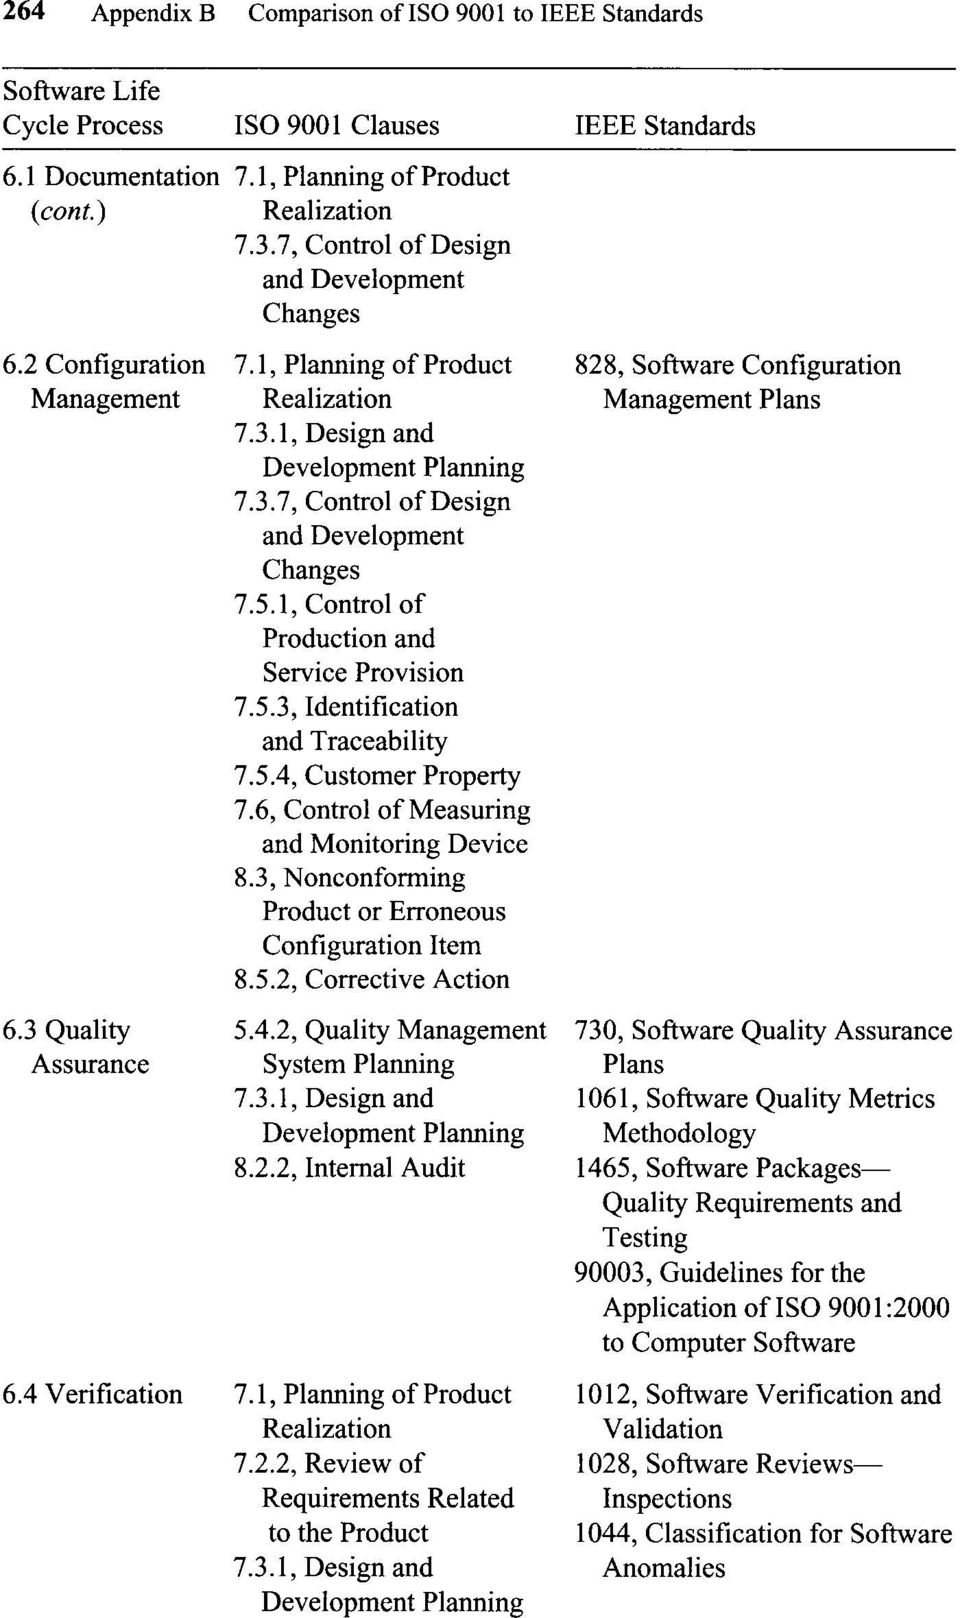 2.2, Internal Audit 7.2.2, Review of Related 828, Software Configuration Management Plans 730, Software Quality Assurance Plans 1061, Software Quality Metrics Methodology 1465, Software